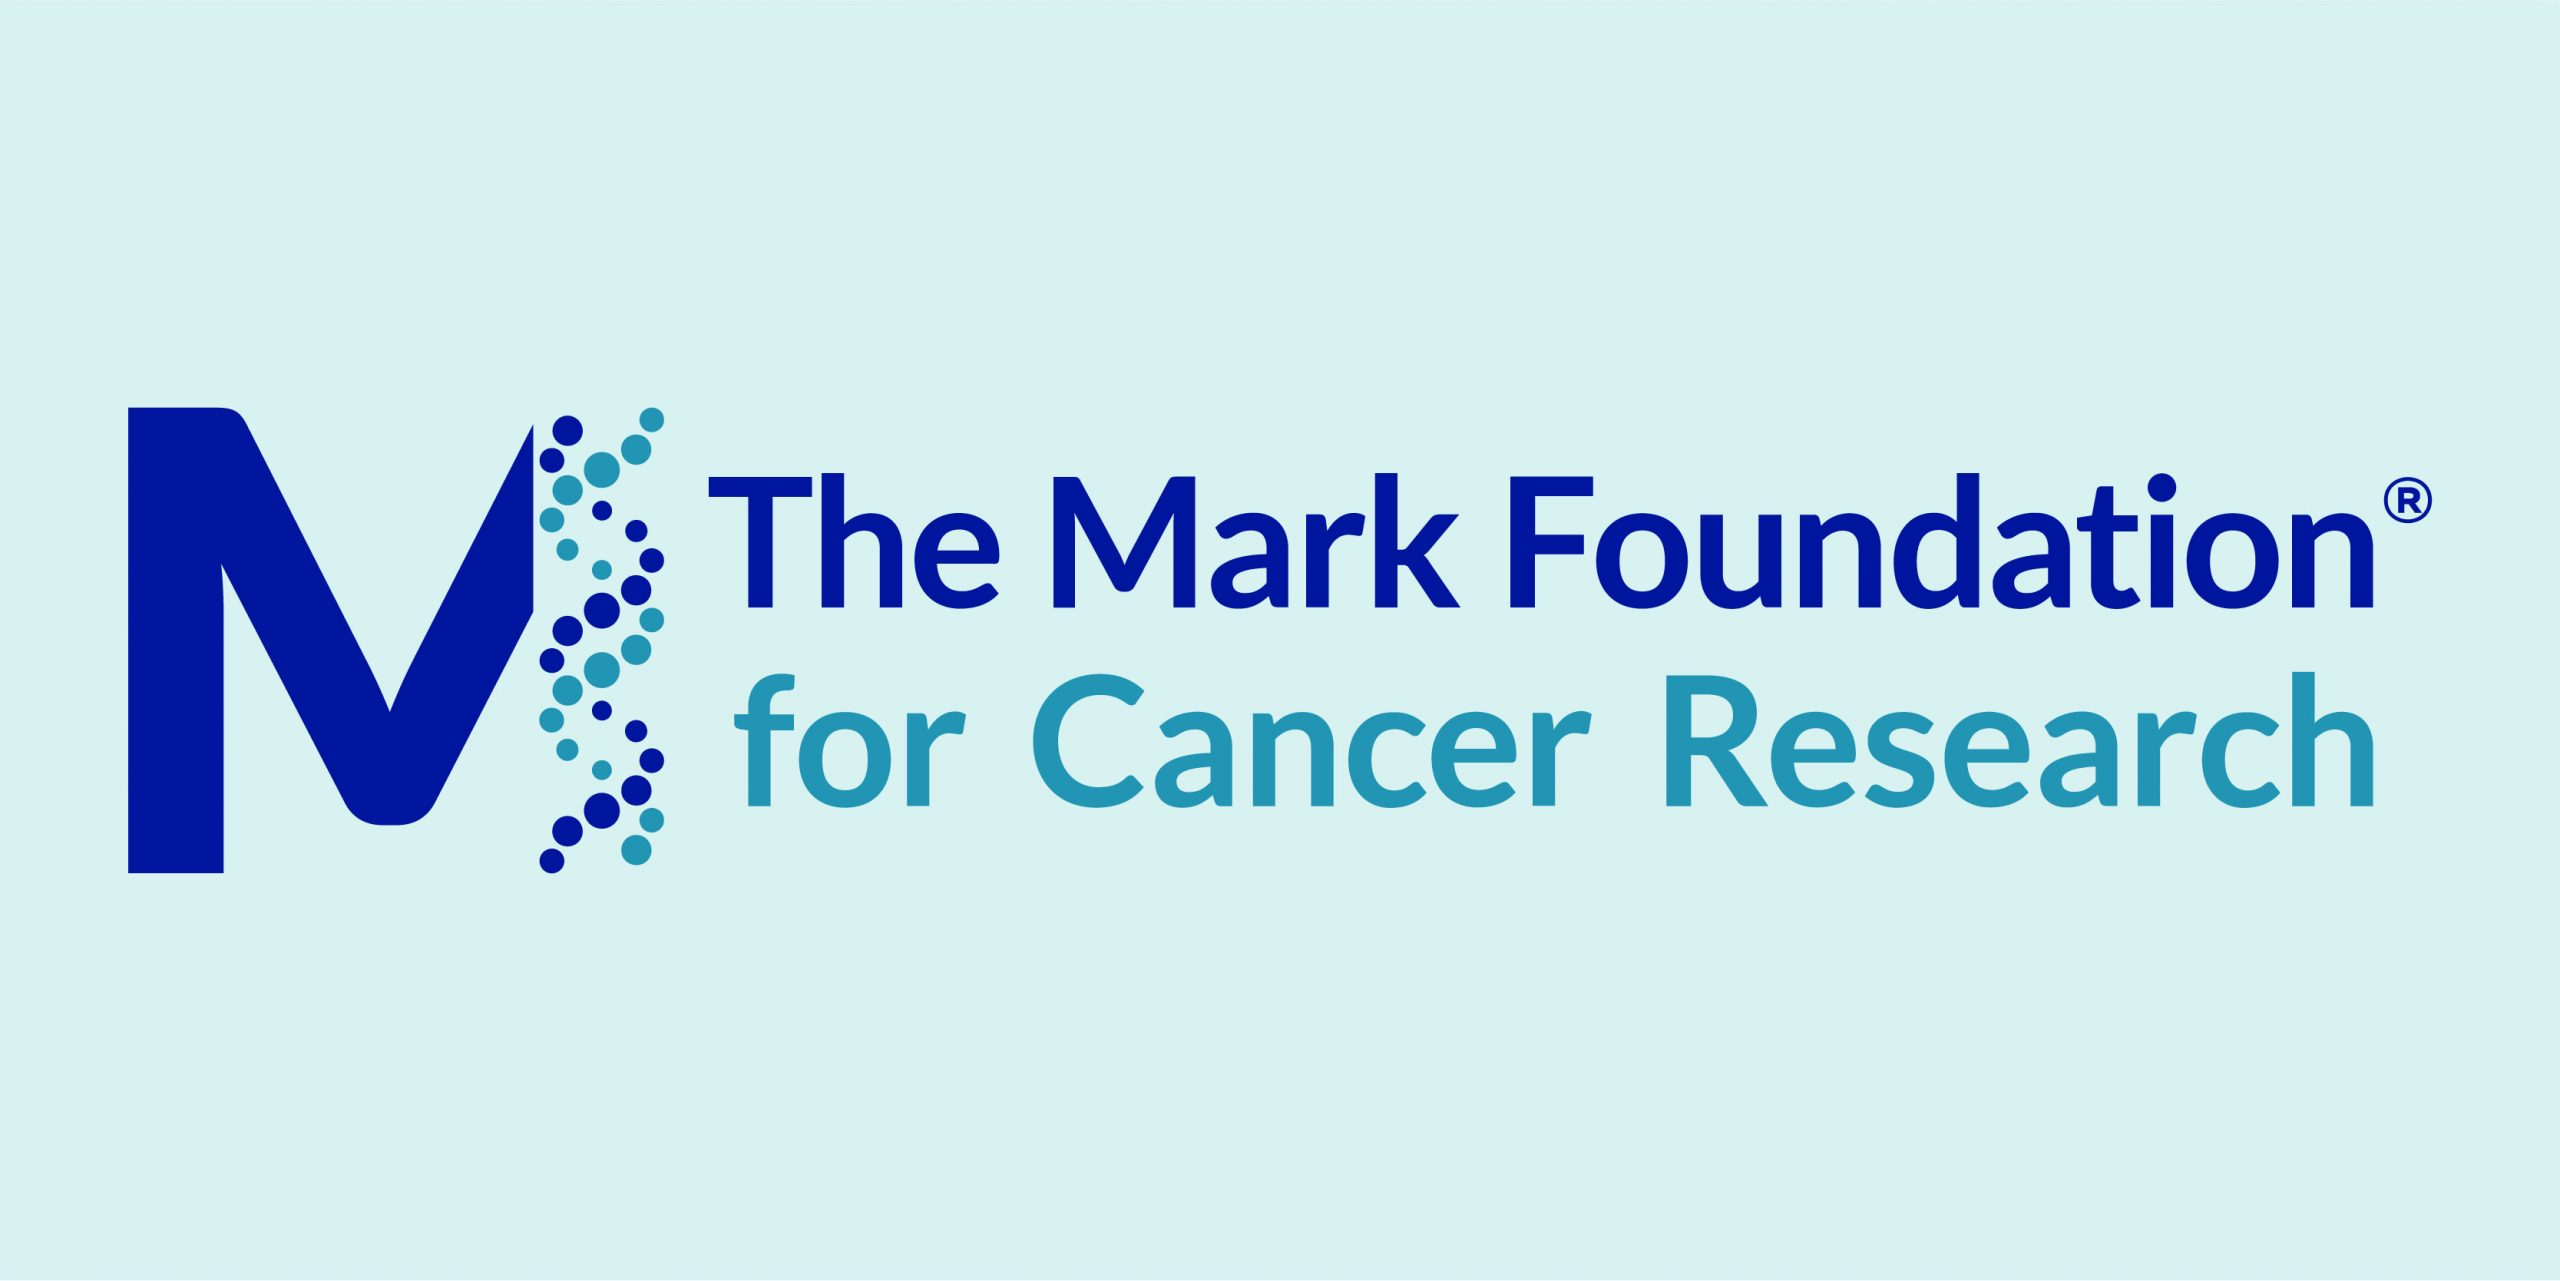 The Mark Foundation for Cancer Research — Emerging Leader Award